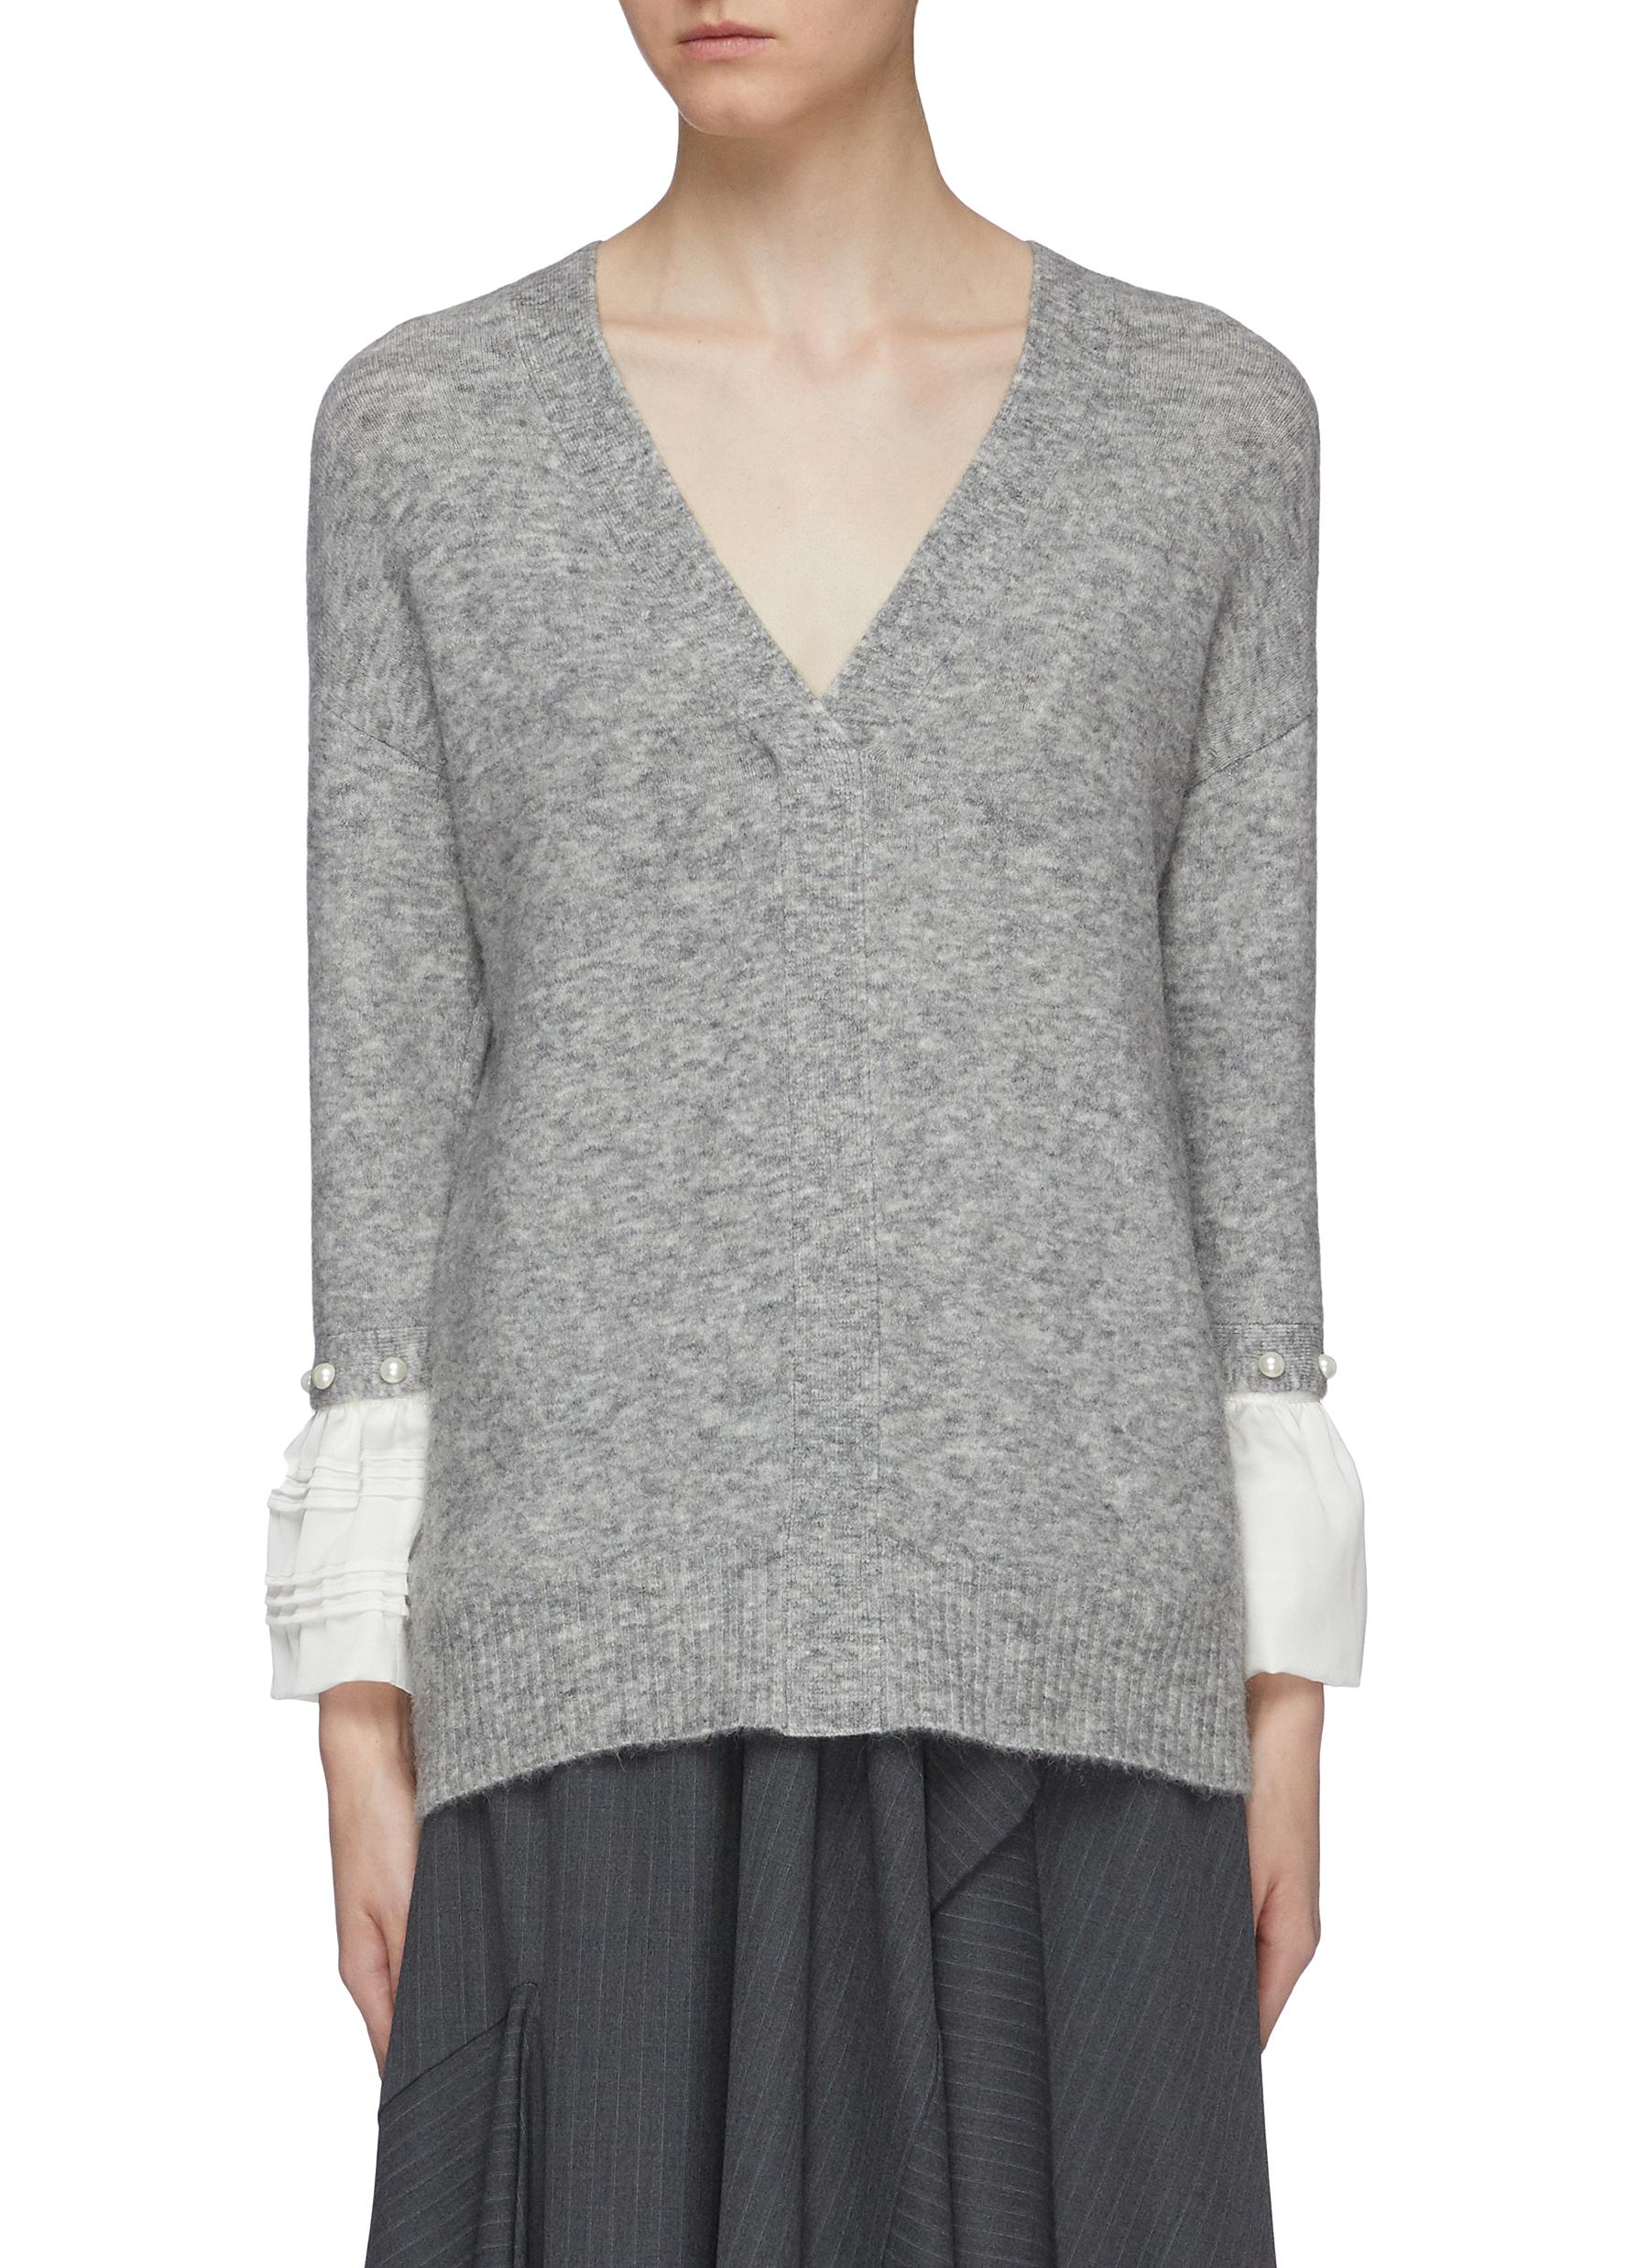 Faux pearl ruffle cuff V-neck sweater by 3.1 Phillip Lim